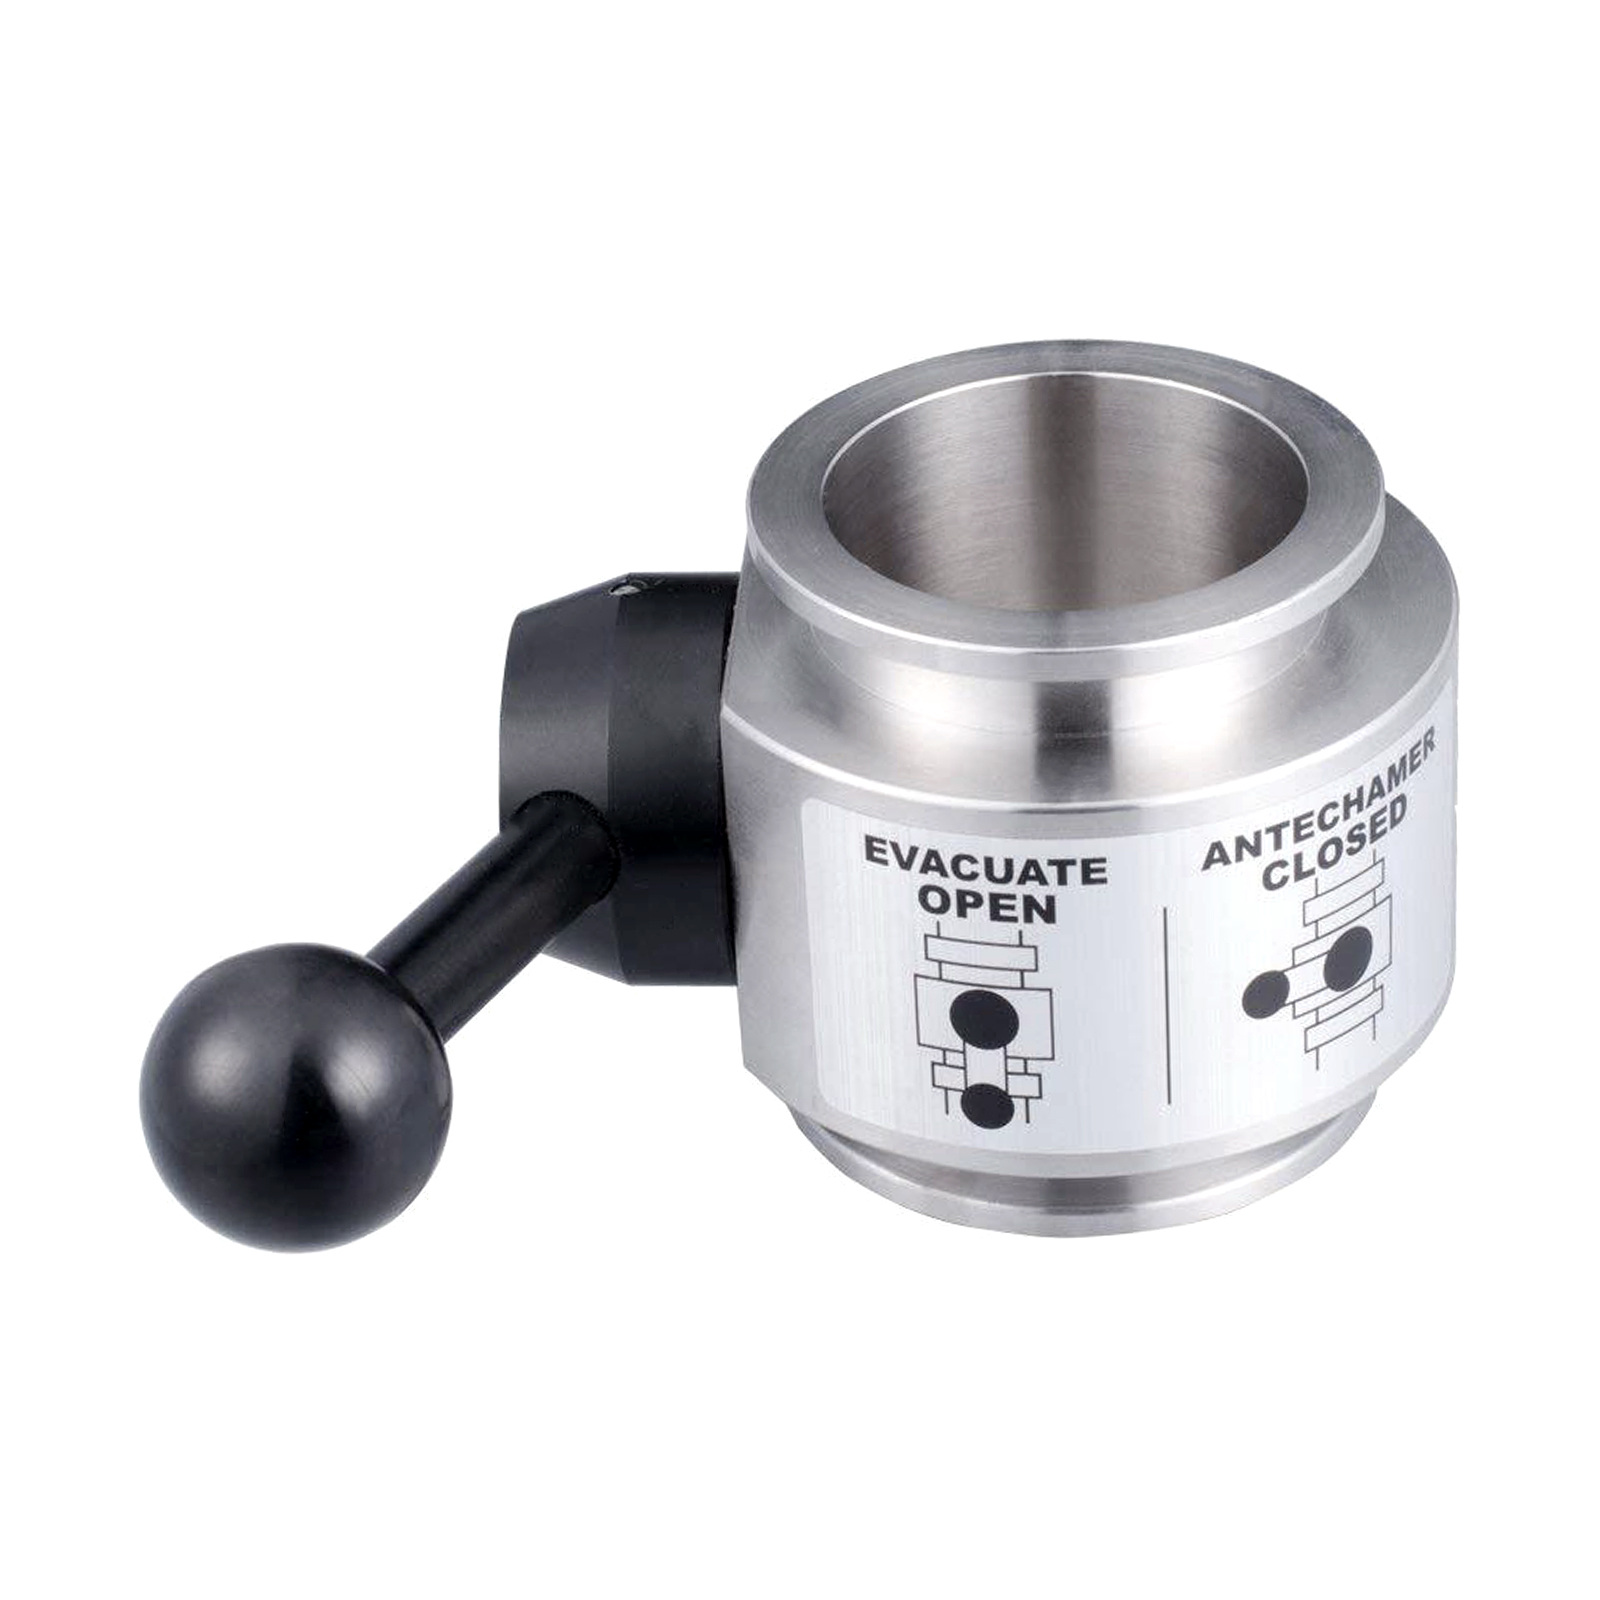 How to Install and Maintain the Pneumatic Ball Valve?